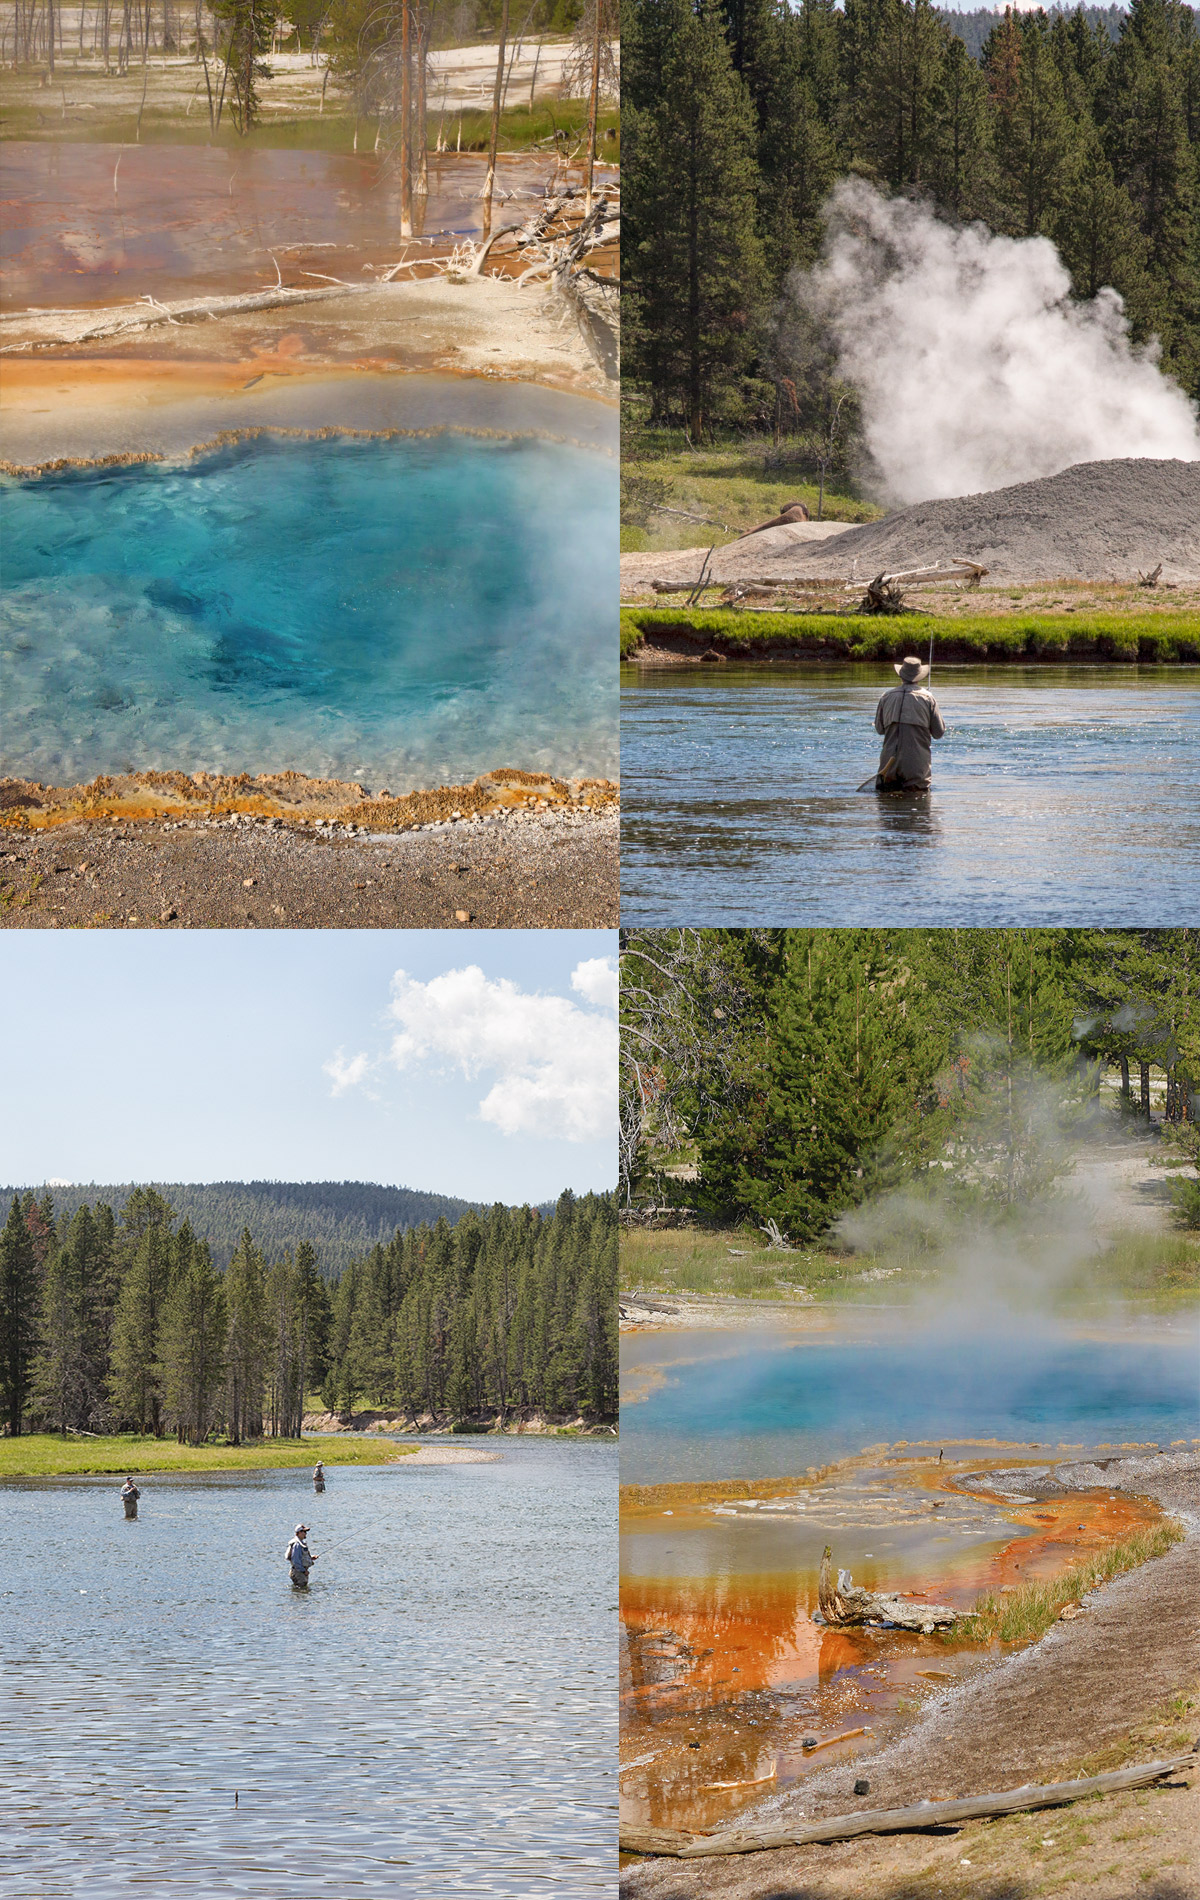 Airstream road trip through yellowstone national park